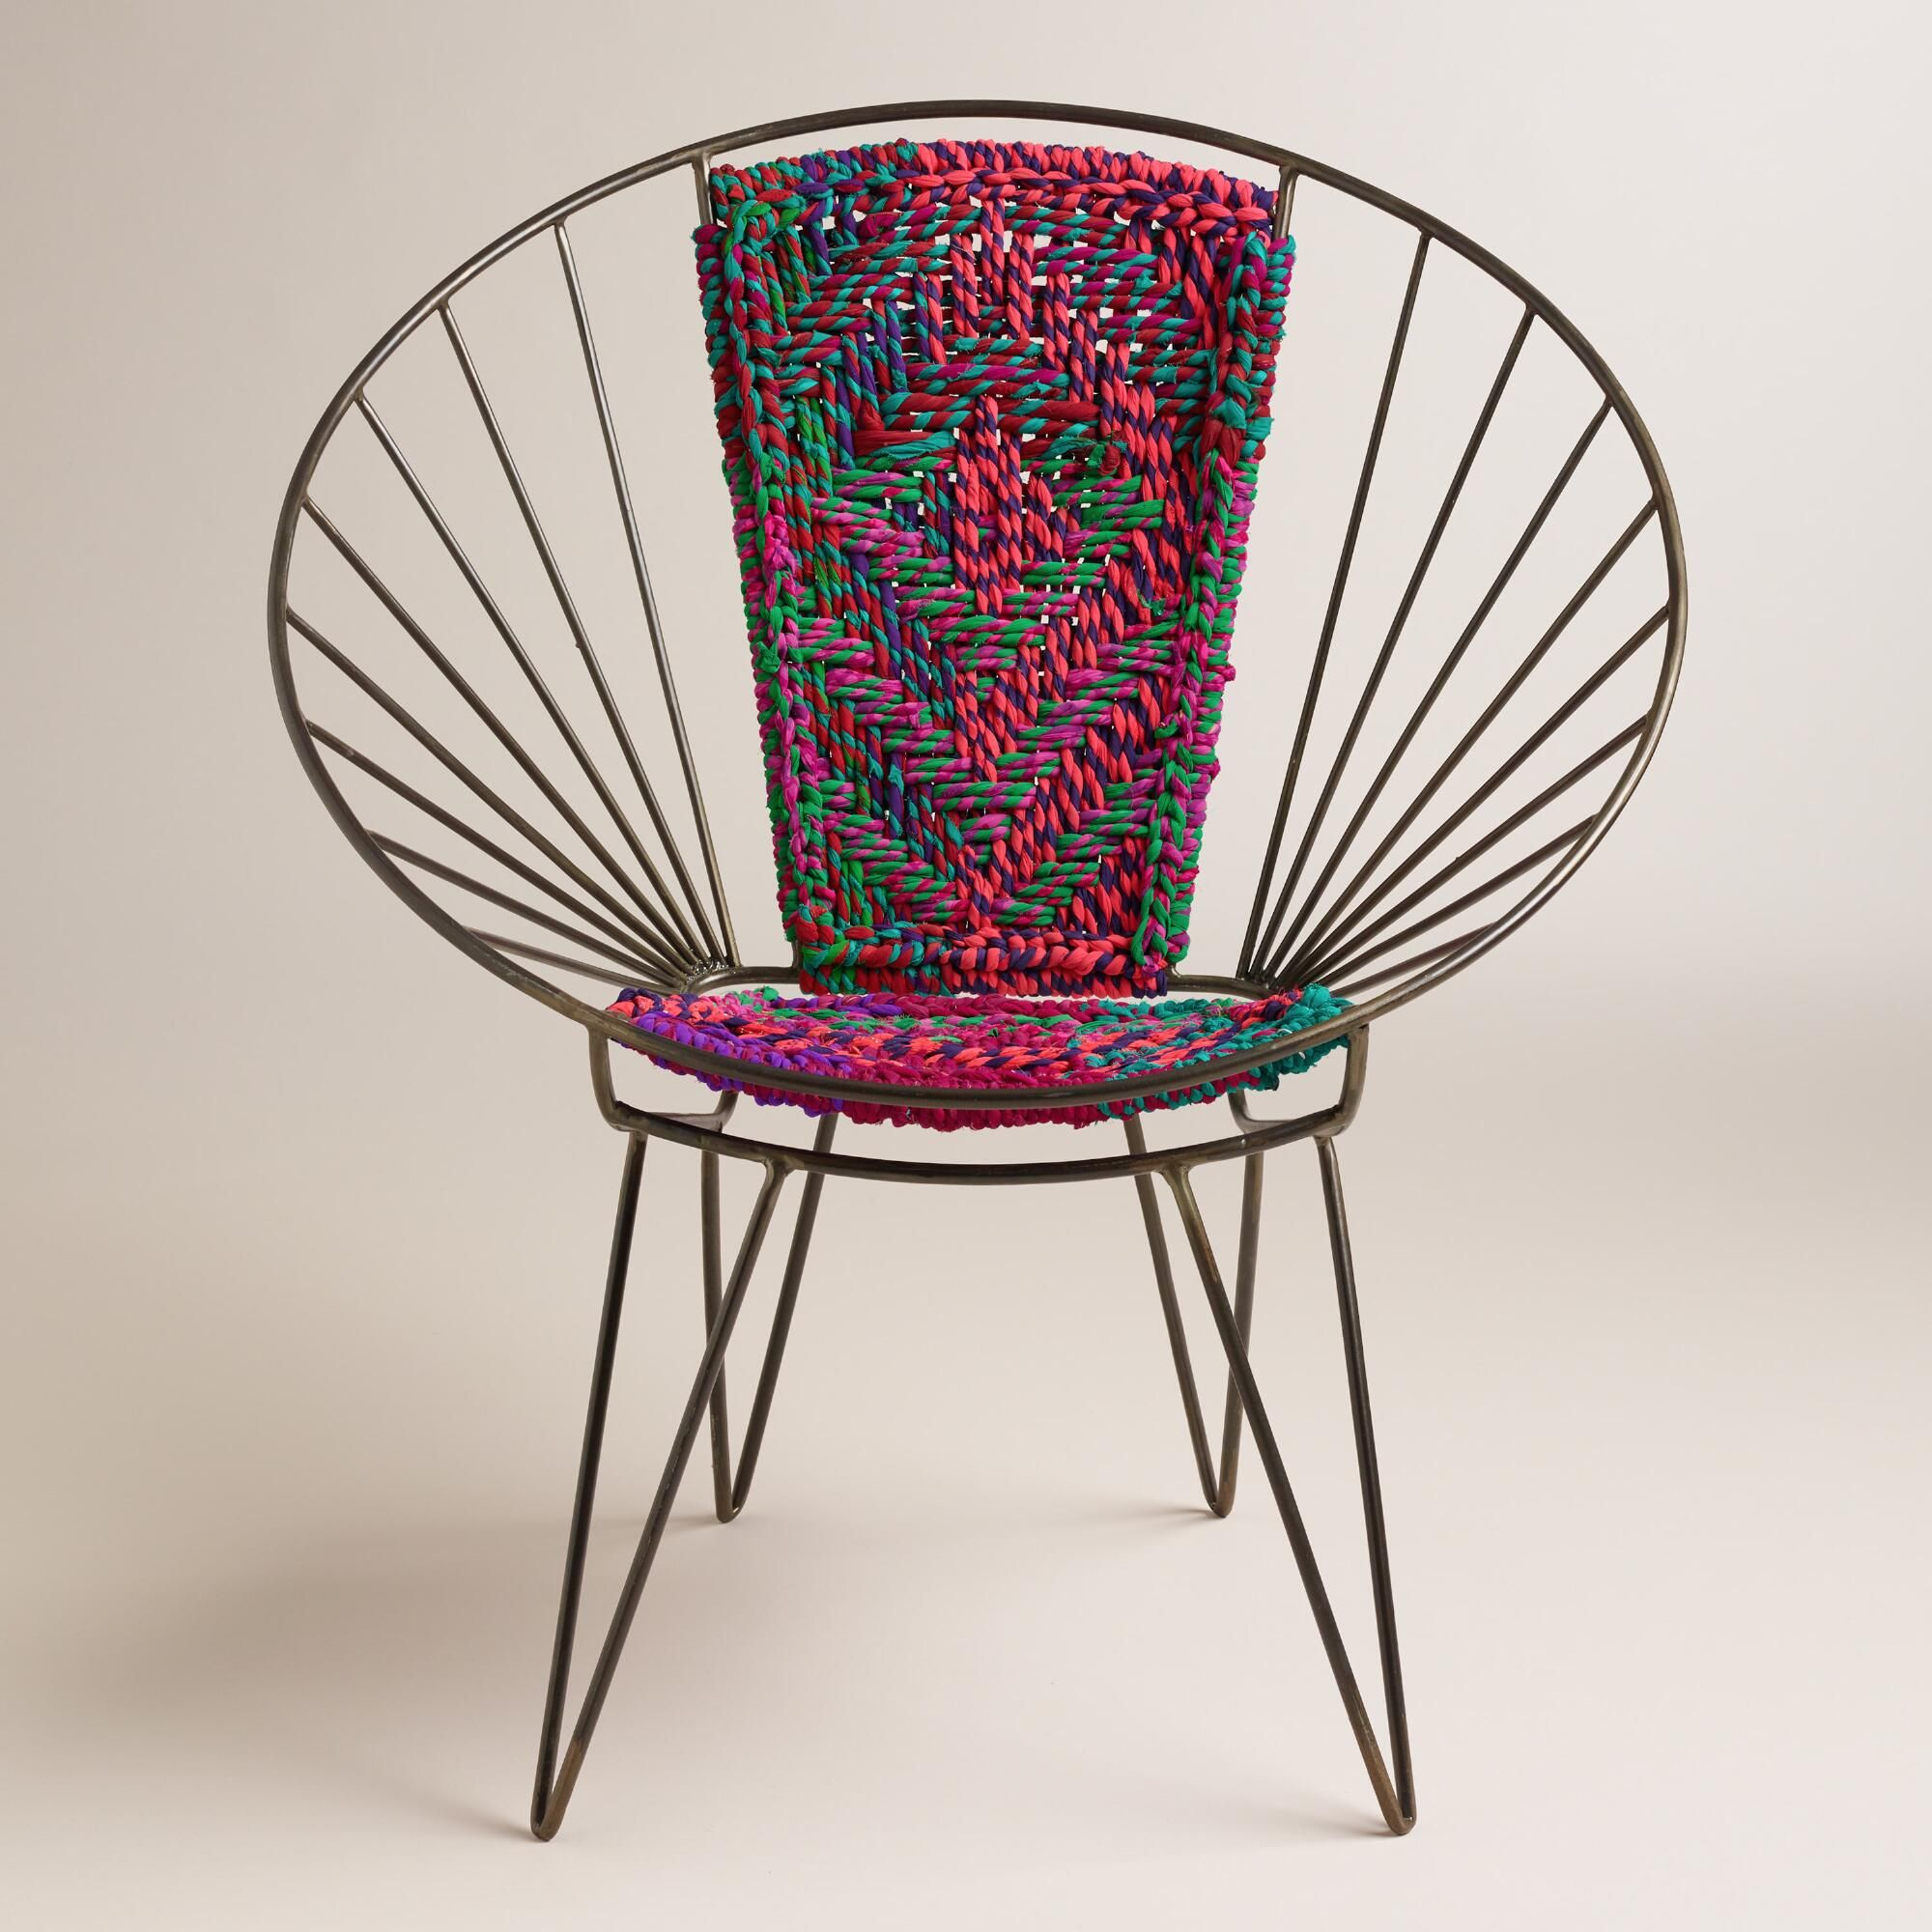 From my living room greenpoint works acapulco chair in leather meets - Metal Woven Chindi Chair